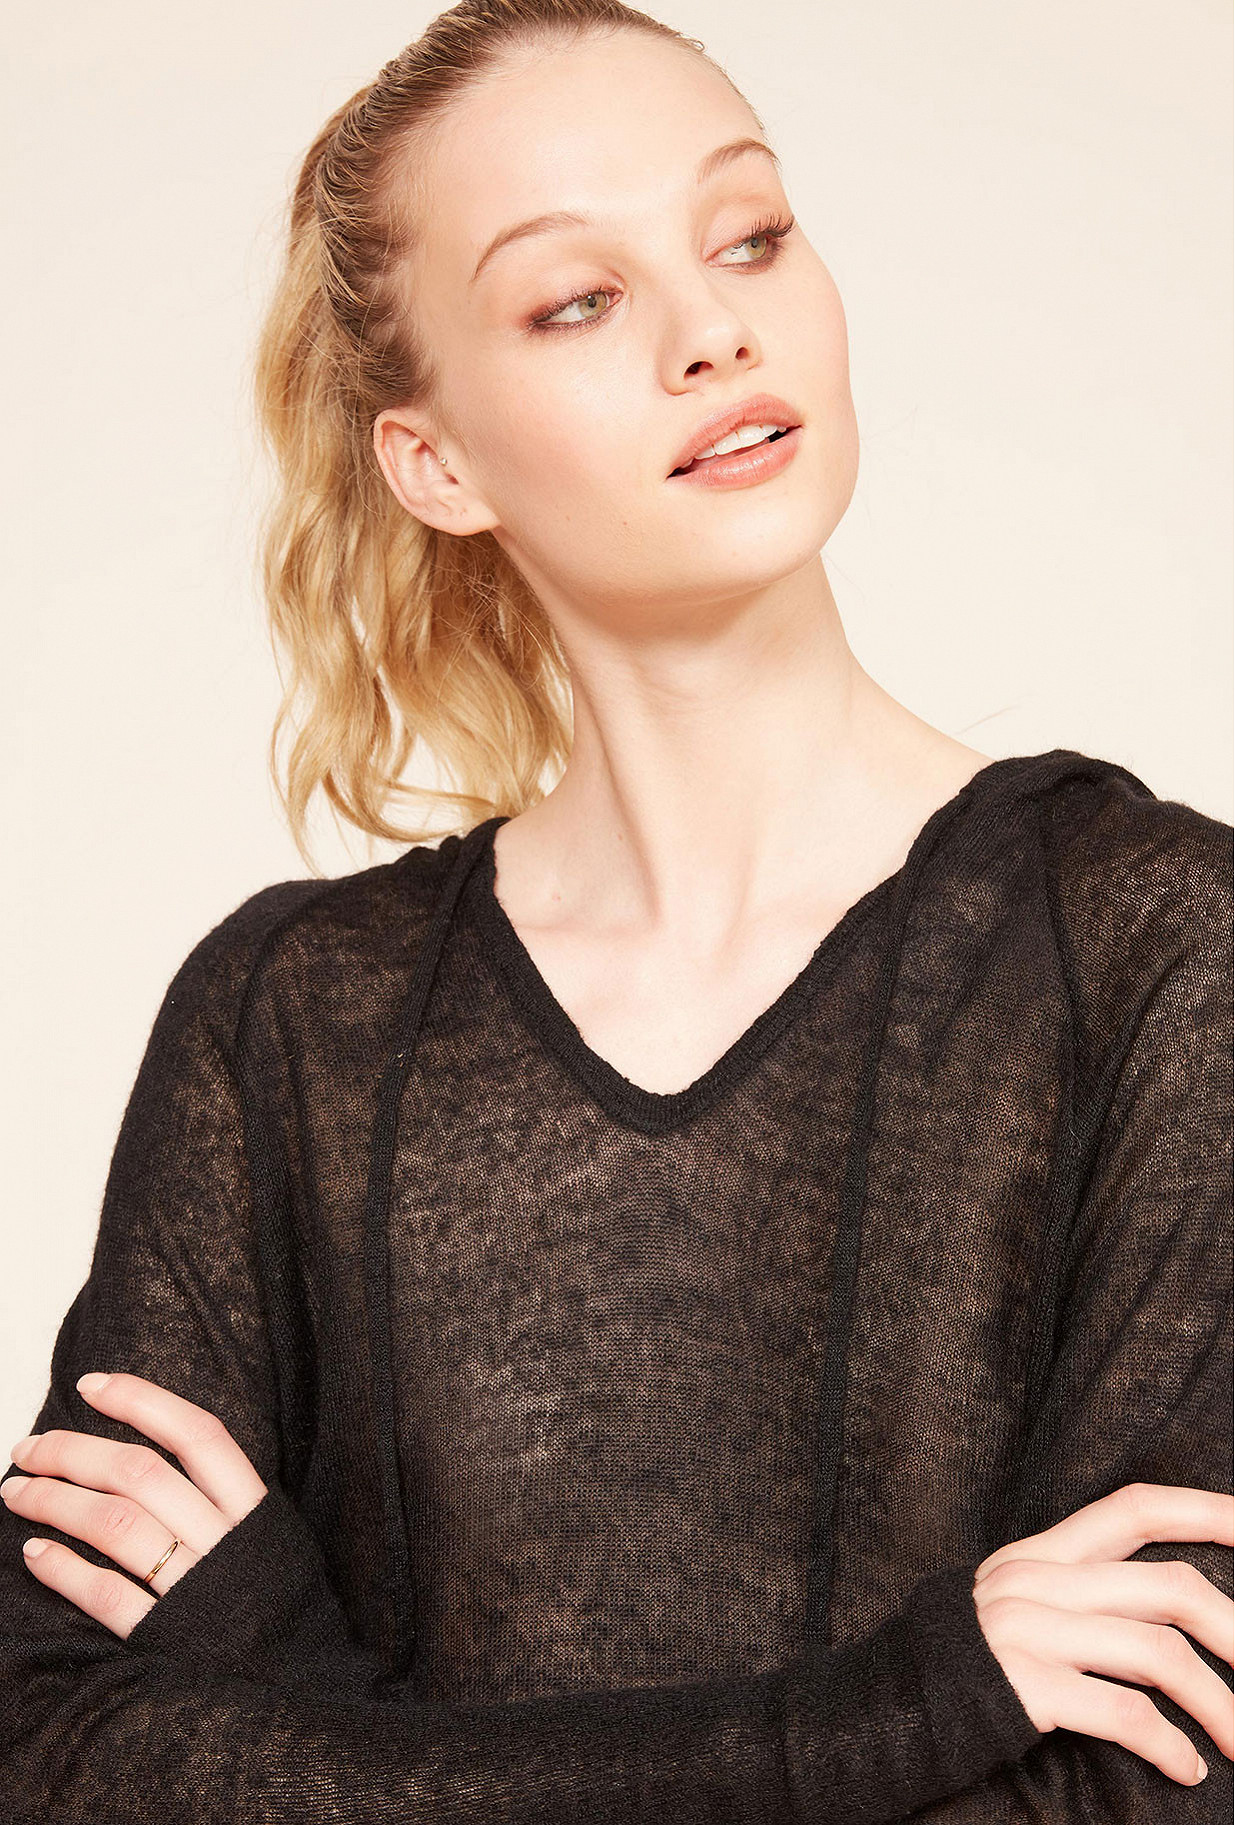 Black Sweater Shoshana